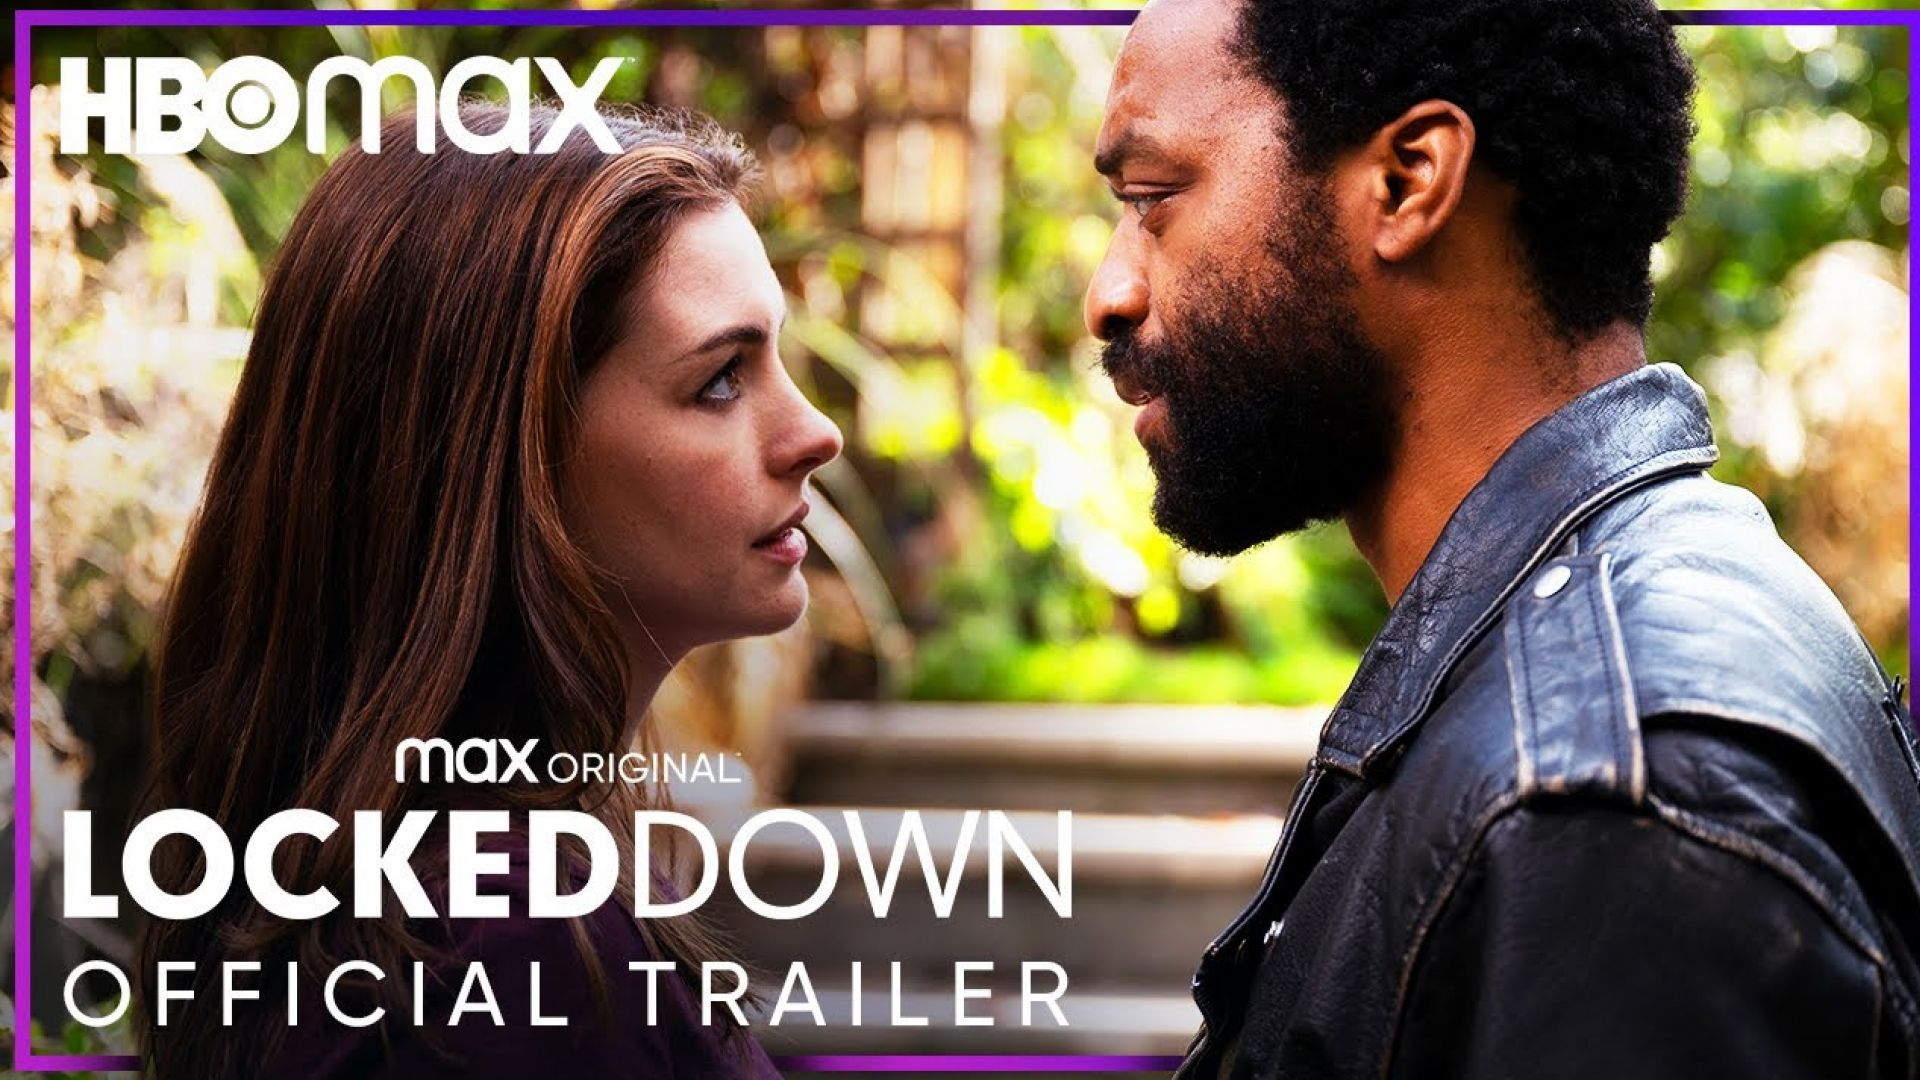 'Locked Down' Official Trailer